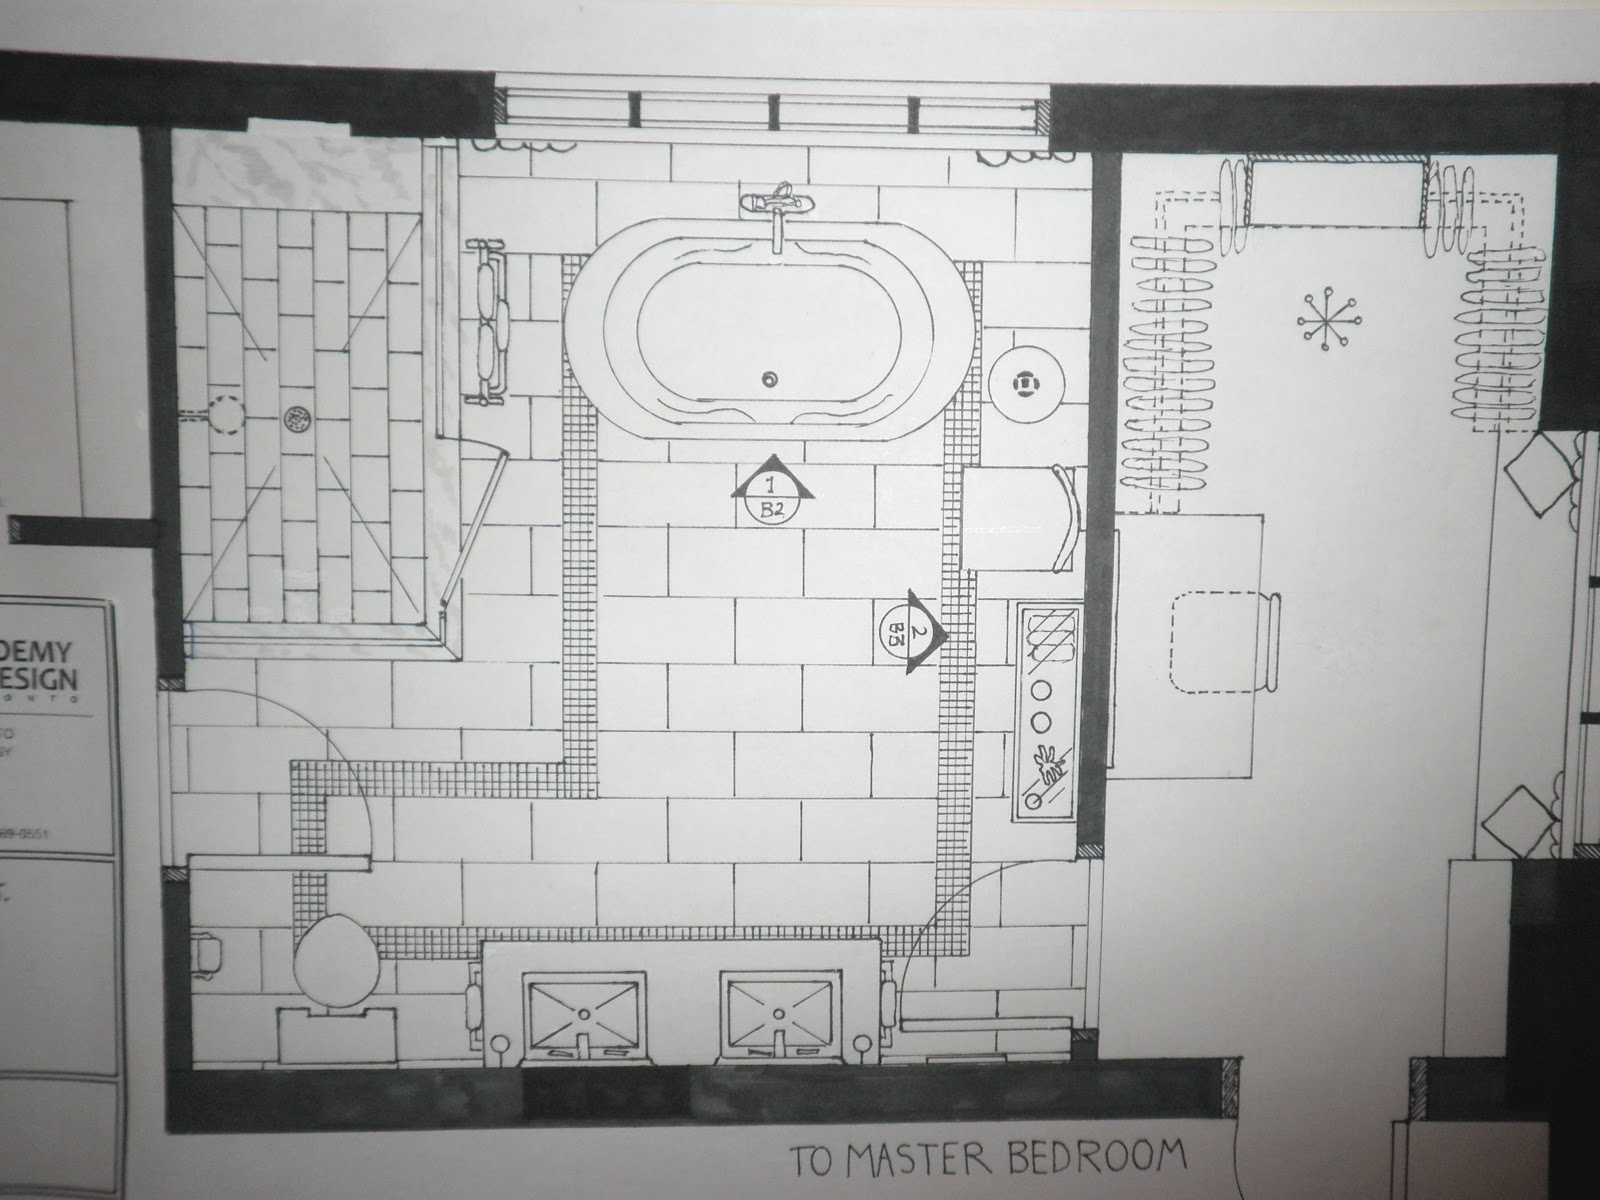 Kitchen Plan Elevation View : Tiffany leigh interior design projects